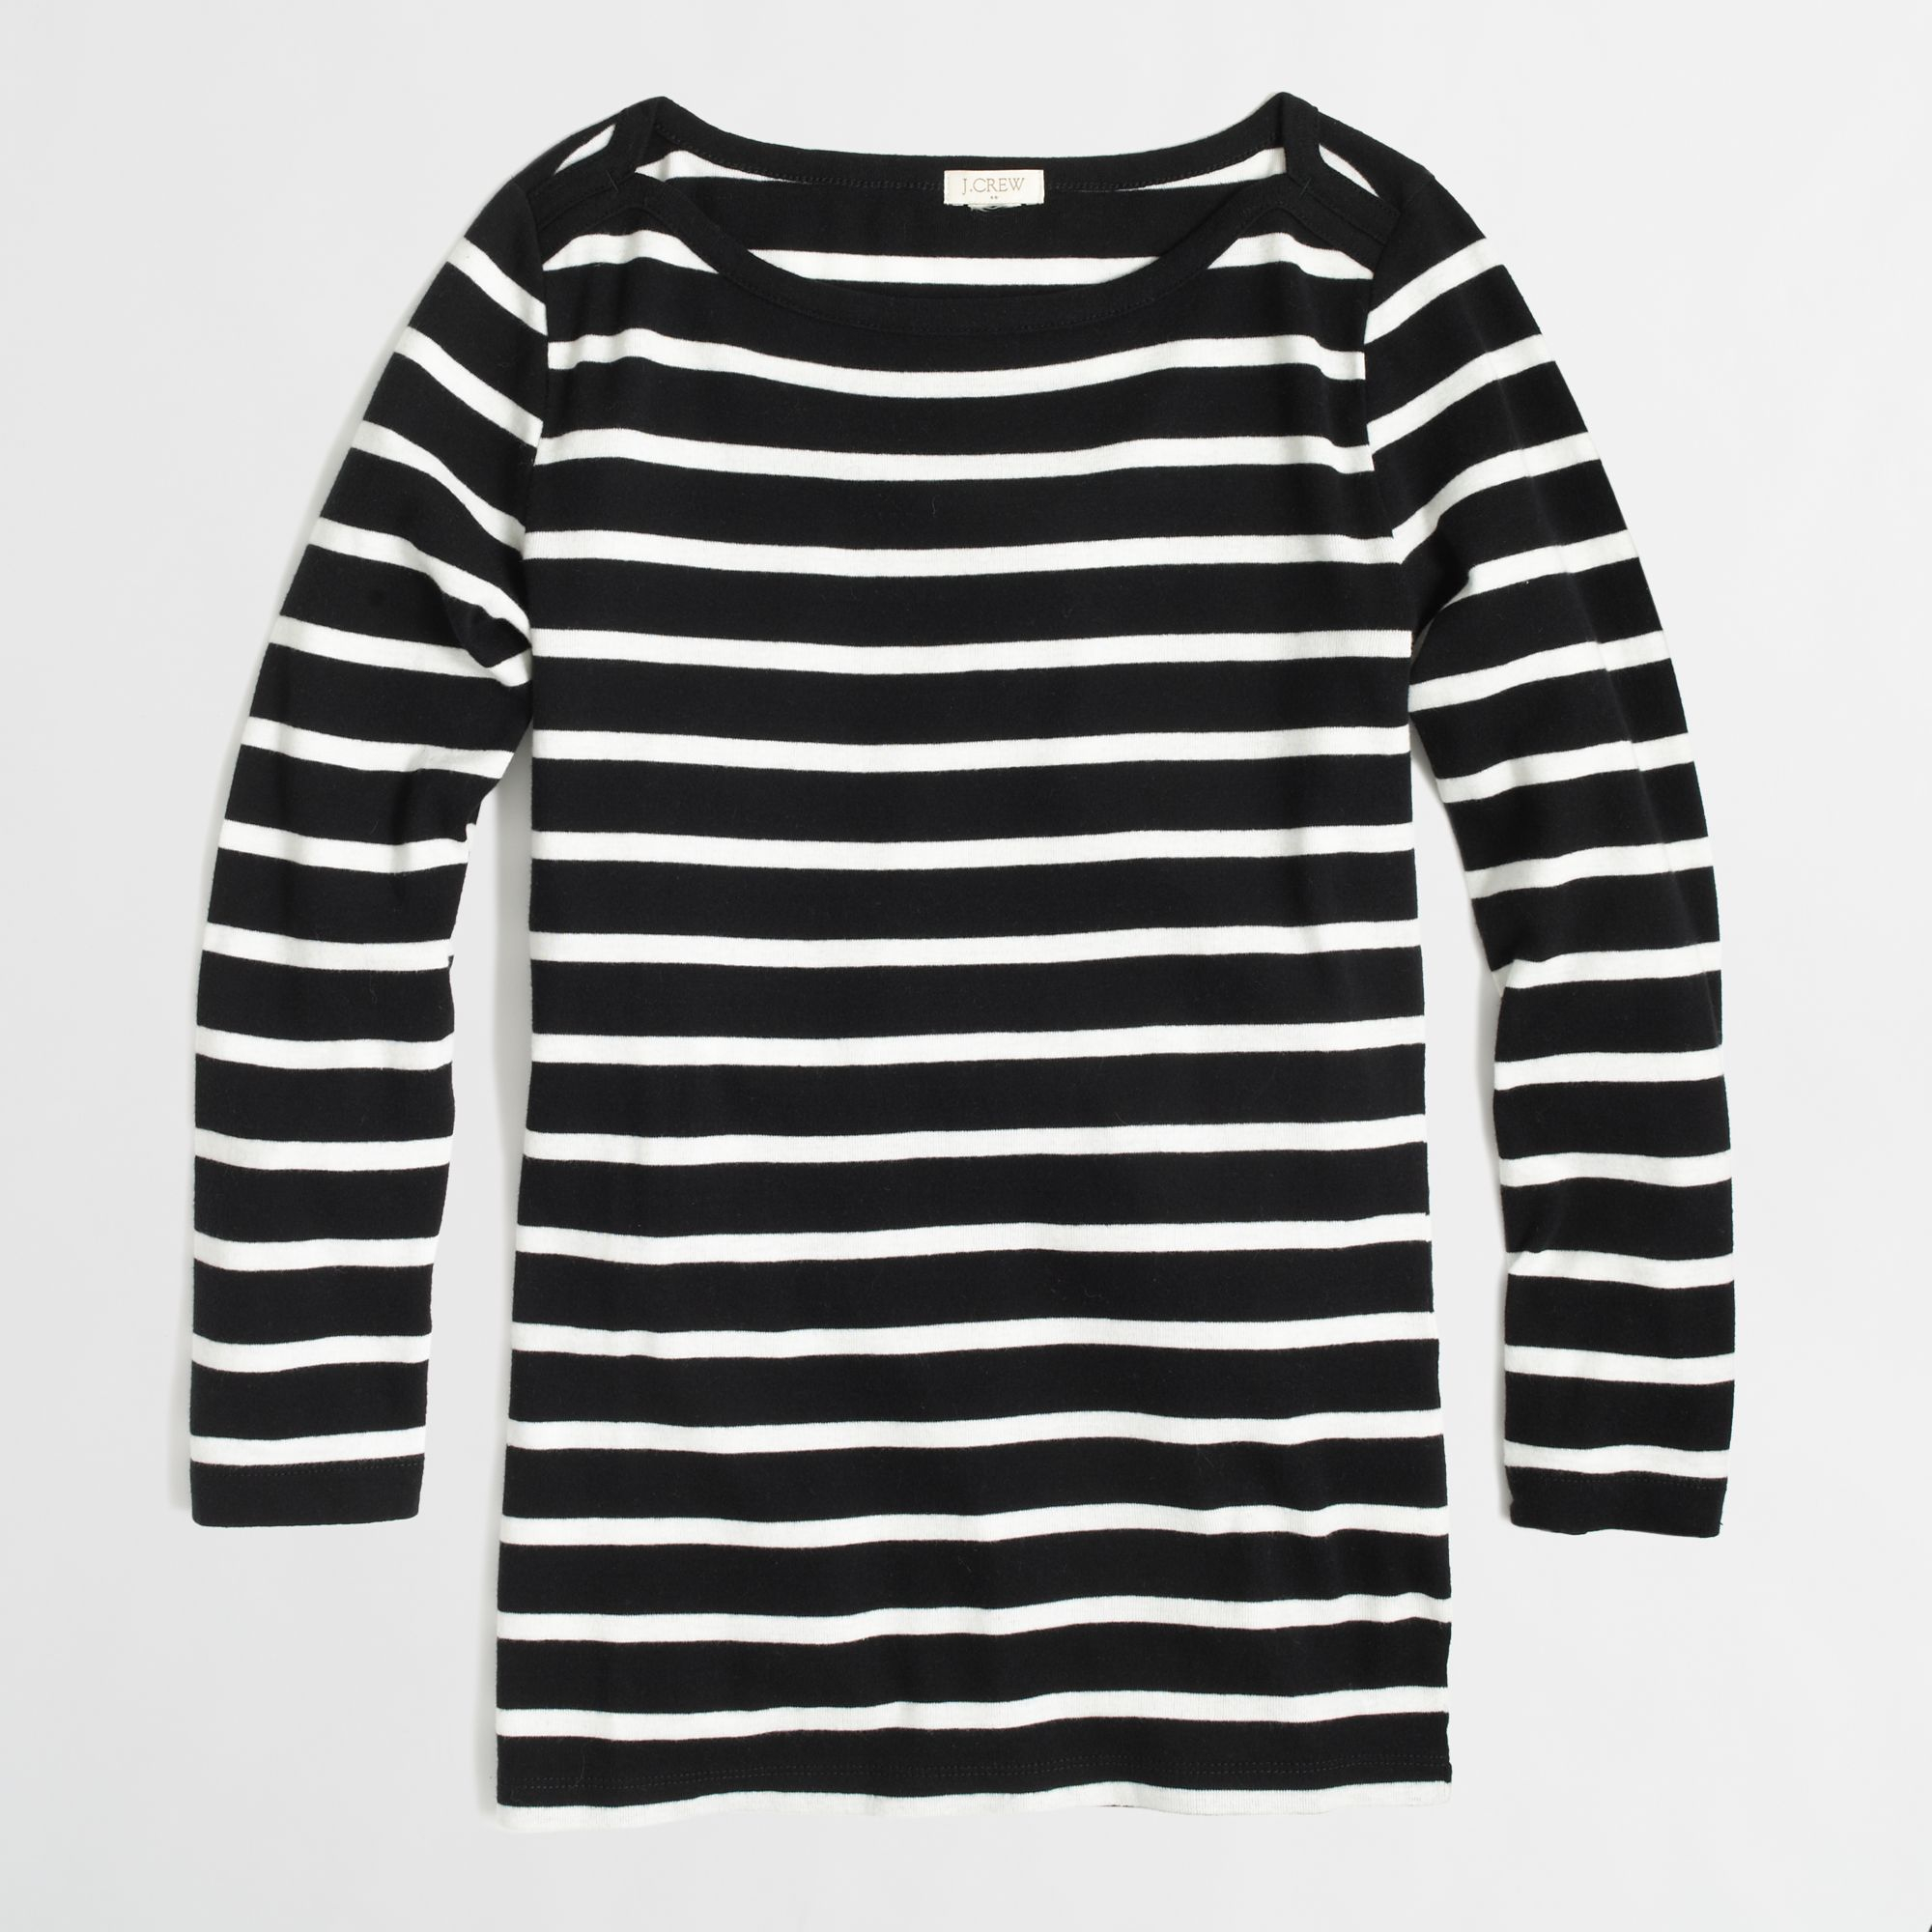 Jcrew perfect fit boat neck striped tee. Cute black and white J. Crew top. The sleeves make the top unique. $ XXXS / 00 4. J Crew. Girls Pink and white striped long sleeve shirt with flower detail on the chest. Cotton and polyester. Comfy. Only worn once. #crewcuts #j.